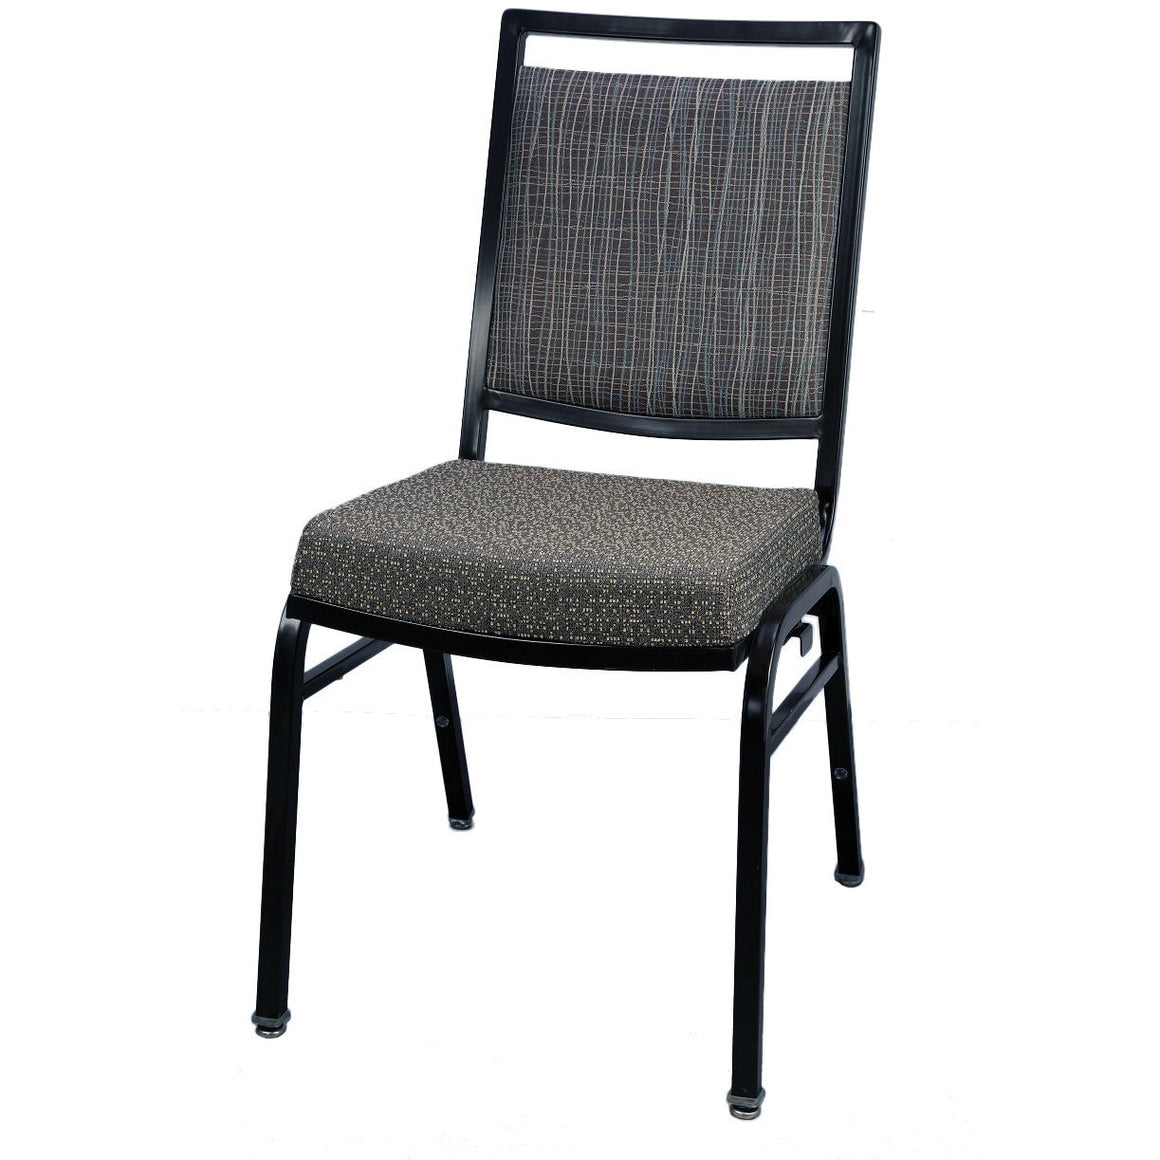 Stacking Chair 310G, Chairs, Cammac, - Cammac